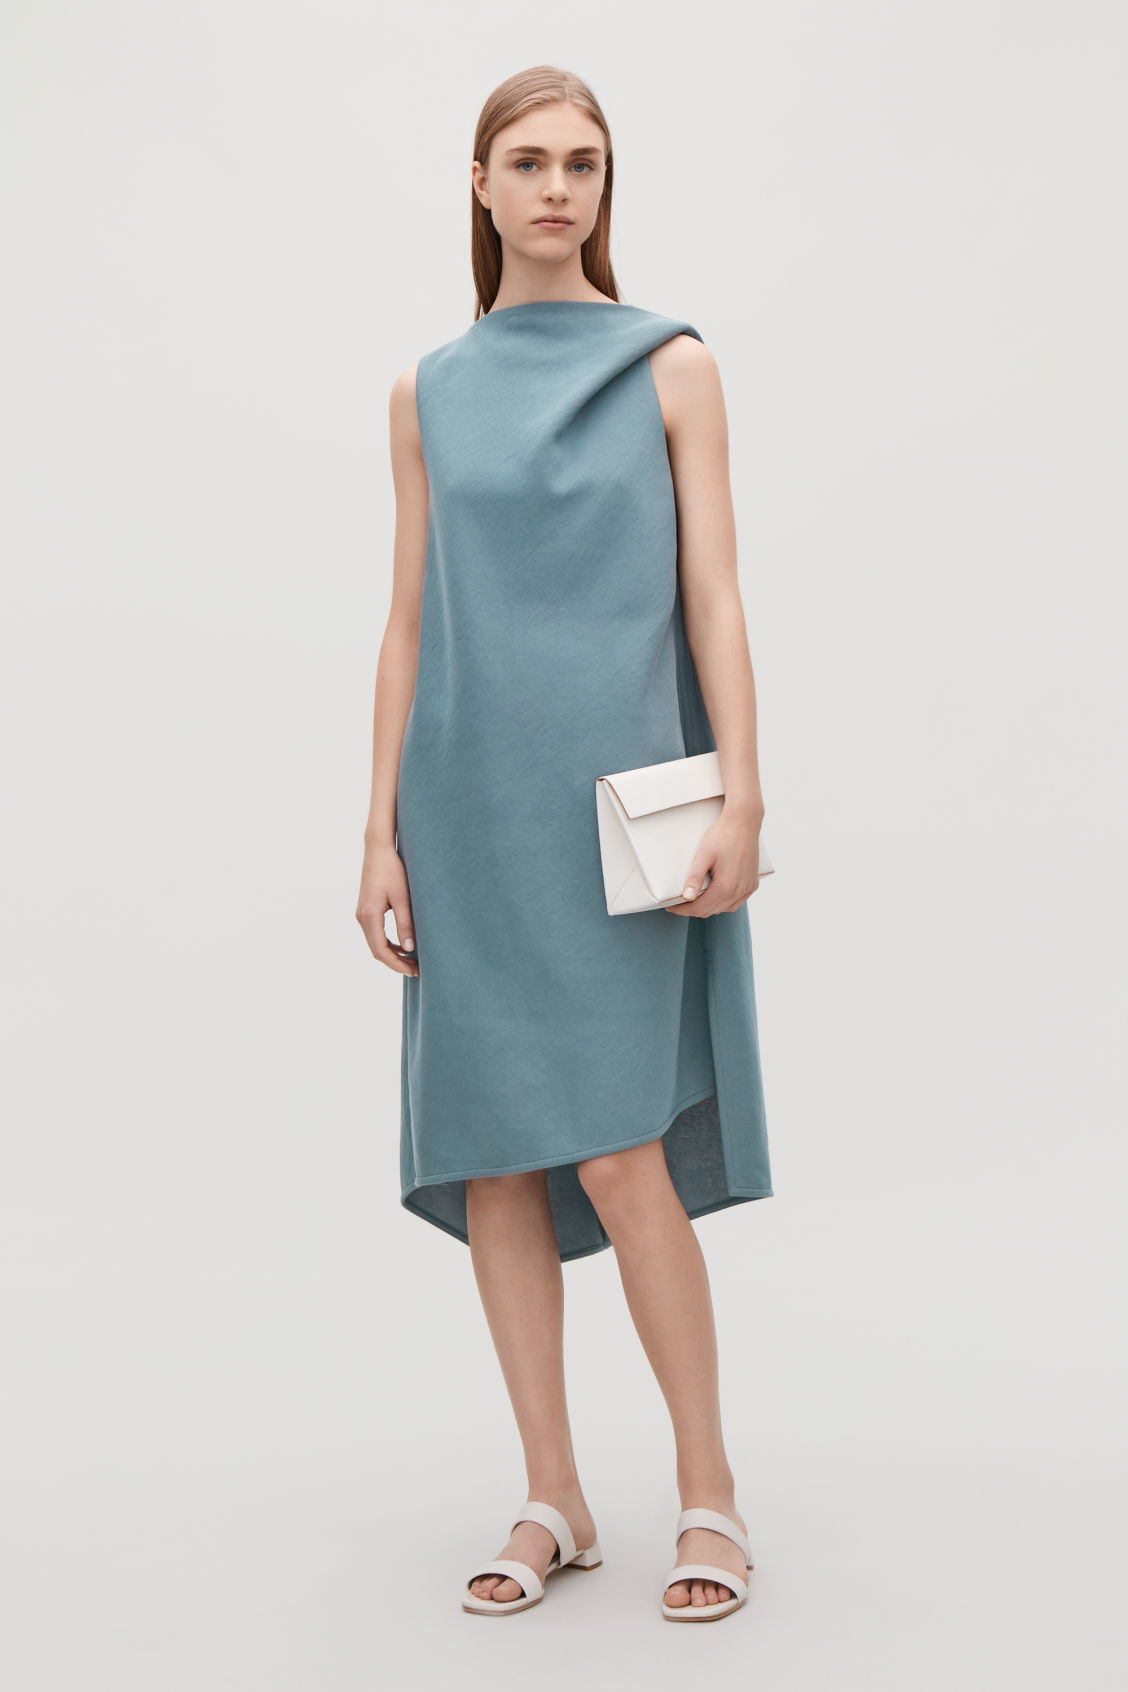 lanvin women drapes jersey blue draped ro f online dress